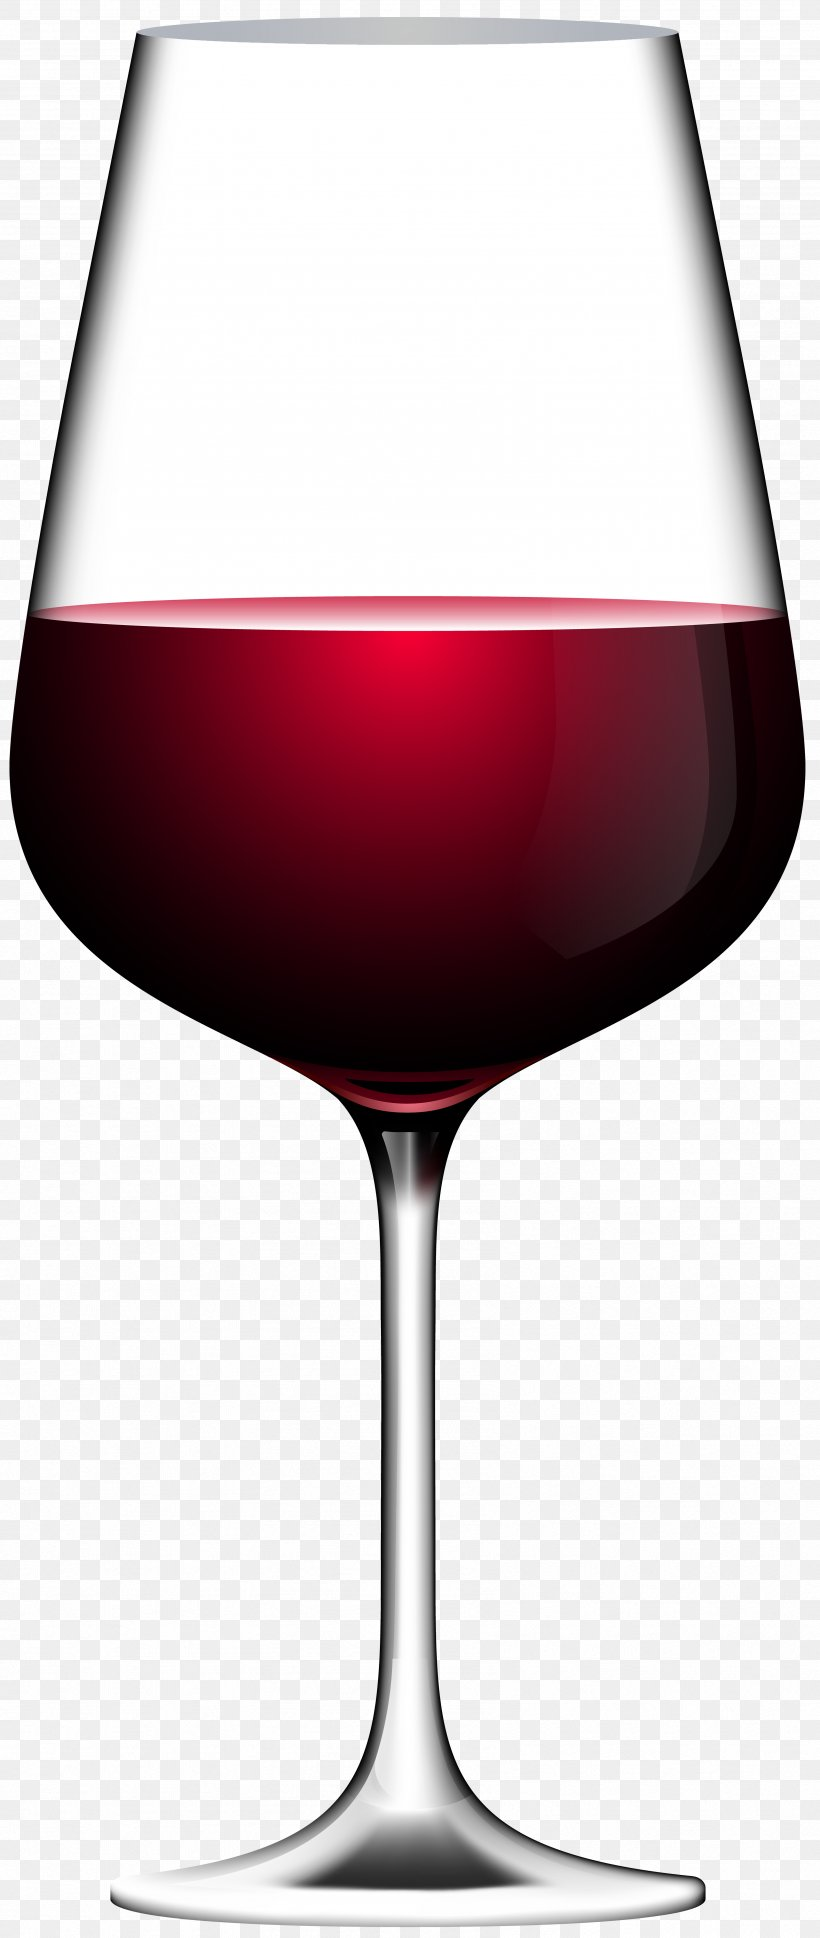 Red Wine Champagne Wine Glass Clip Art, PNG, 3384x8000px.